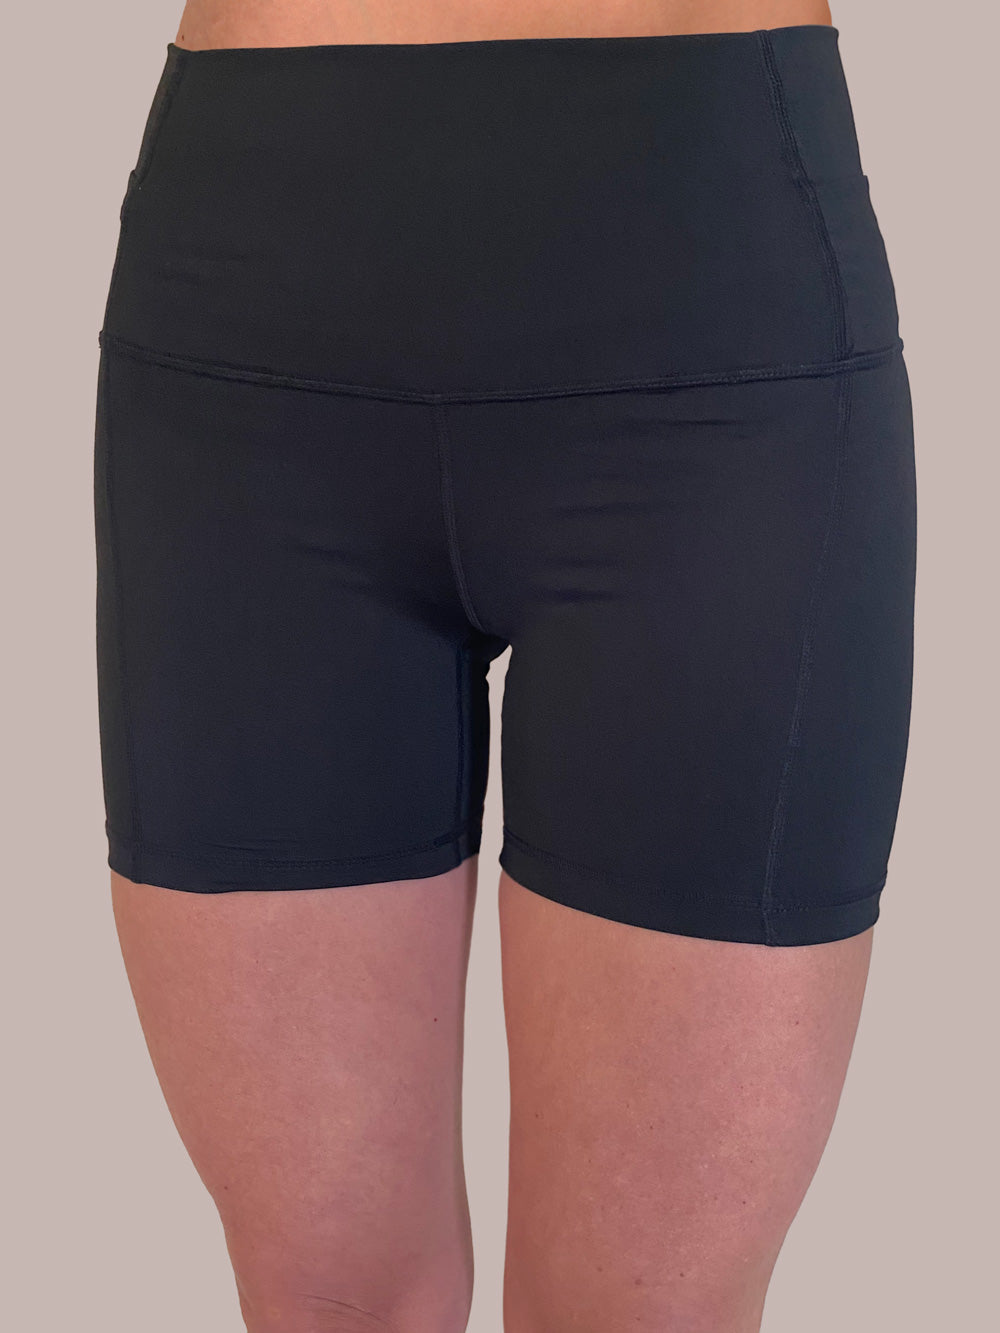 Black Light Weight Yoga / Bike Shorts